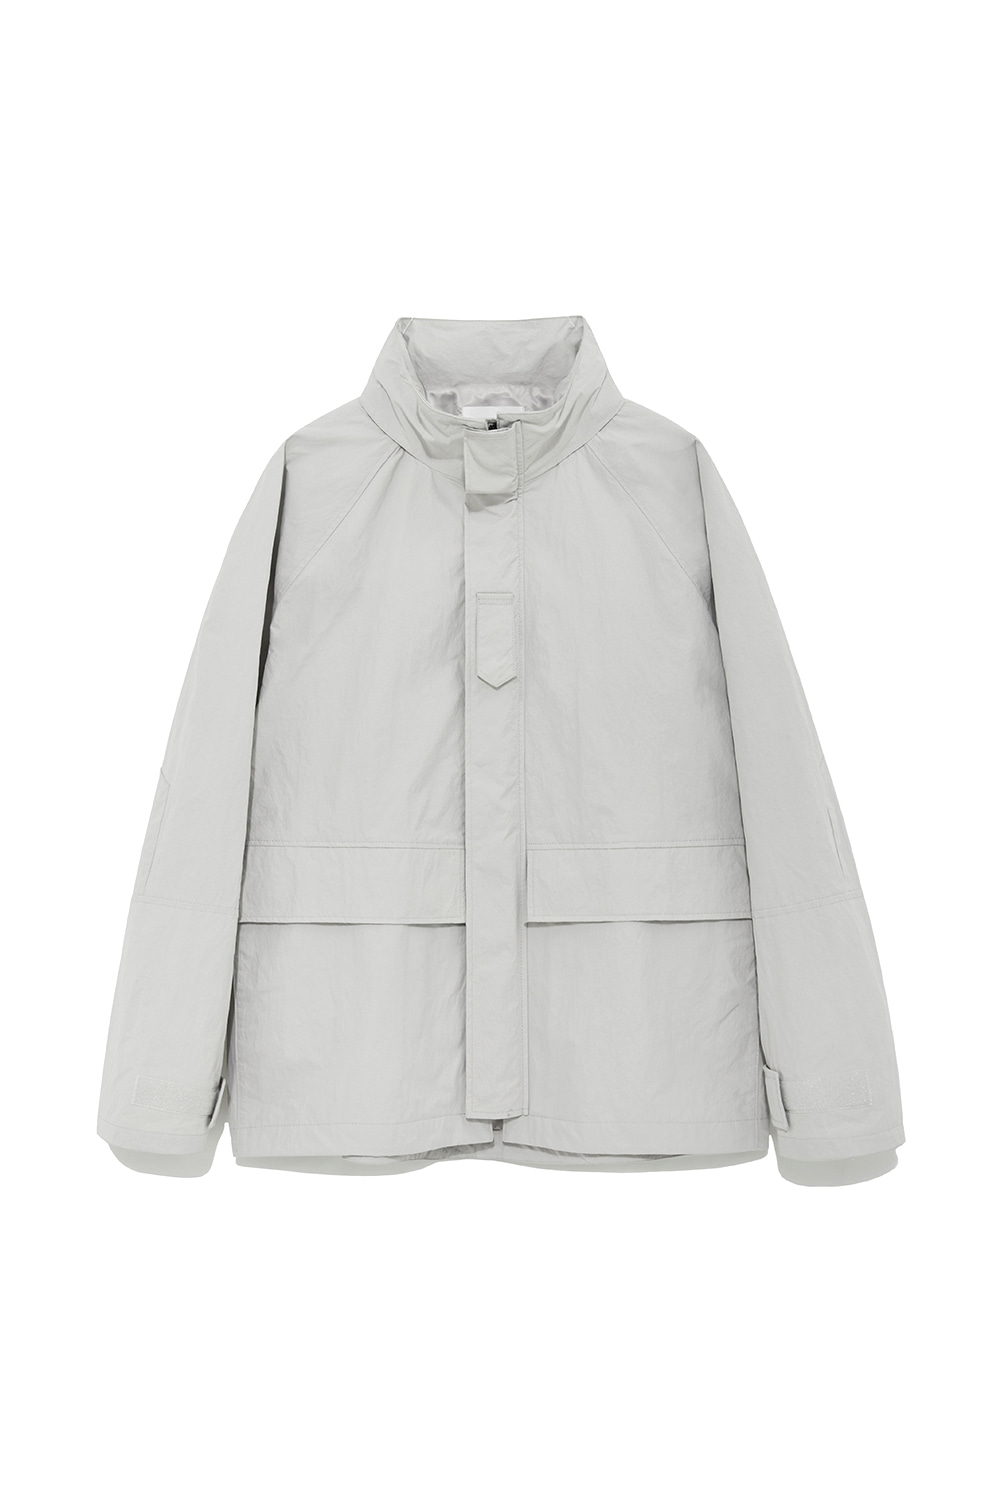 Shell Parka Men [Light Gray]